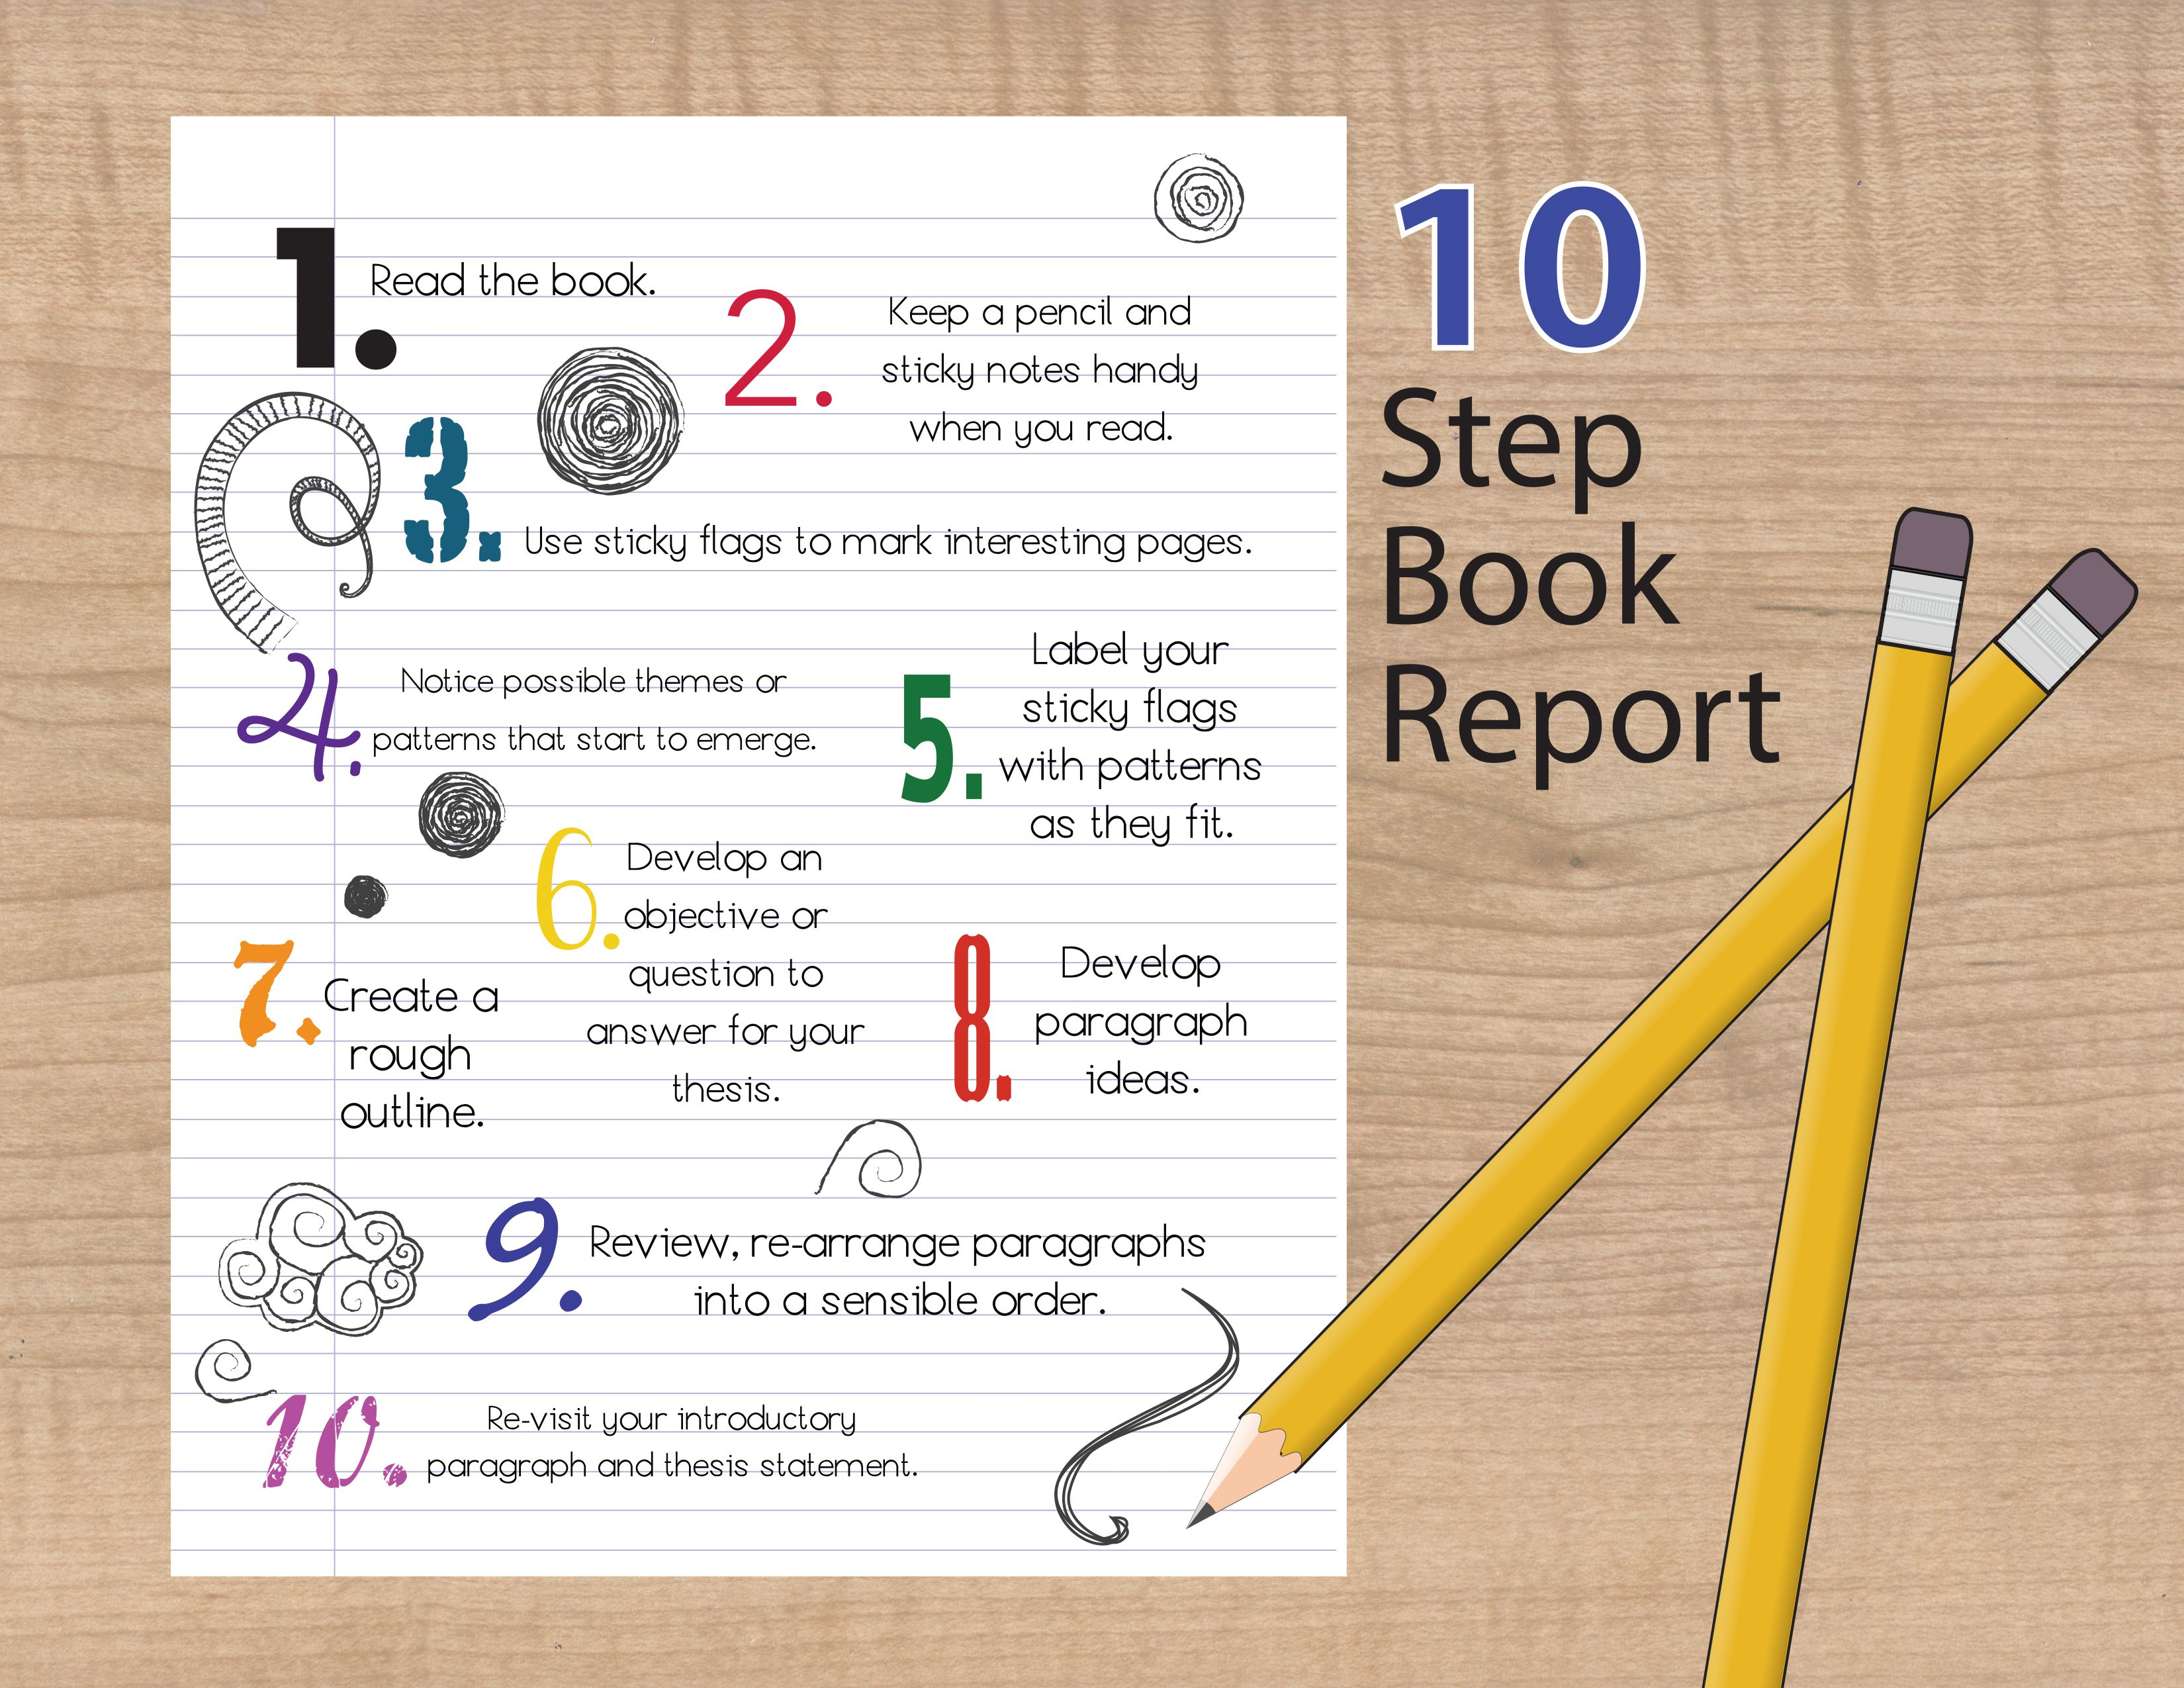 How To Write A Succesful Book Report